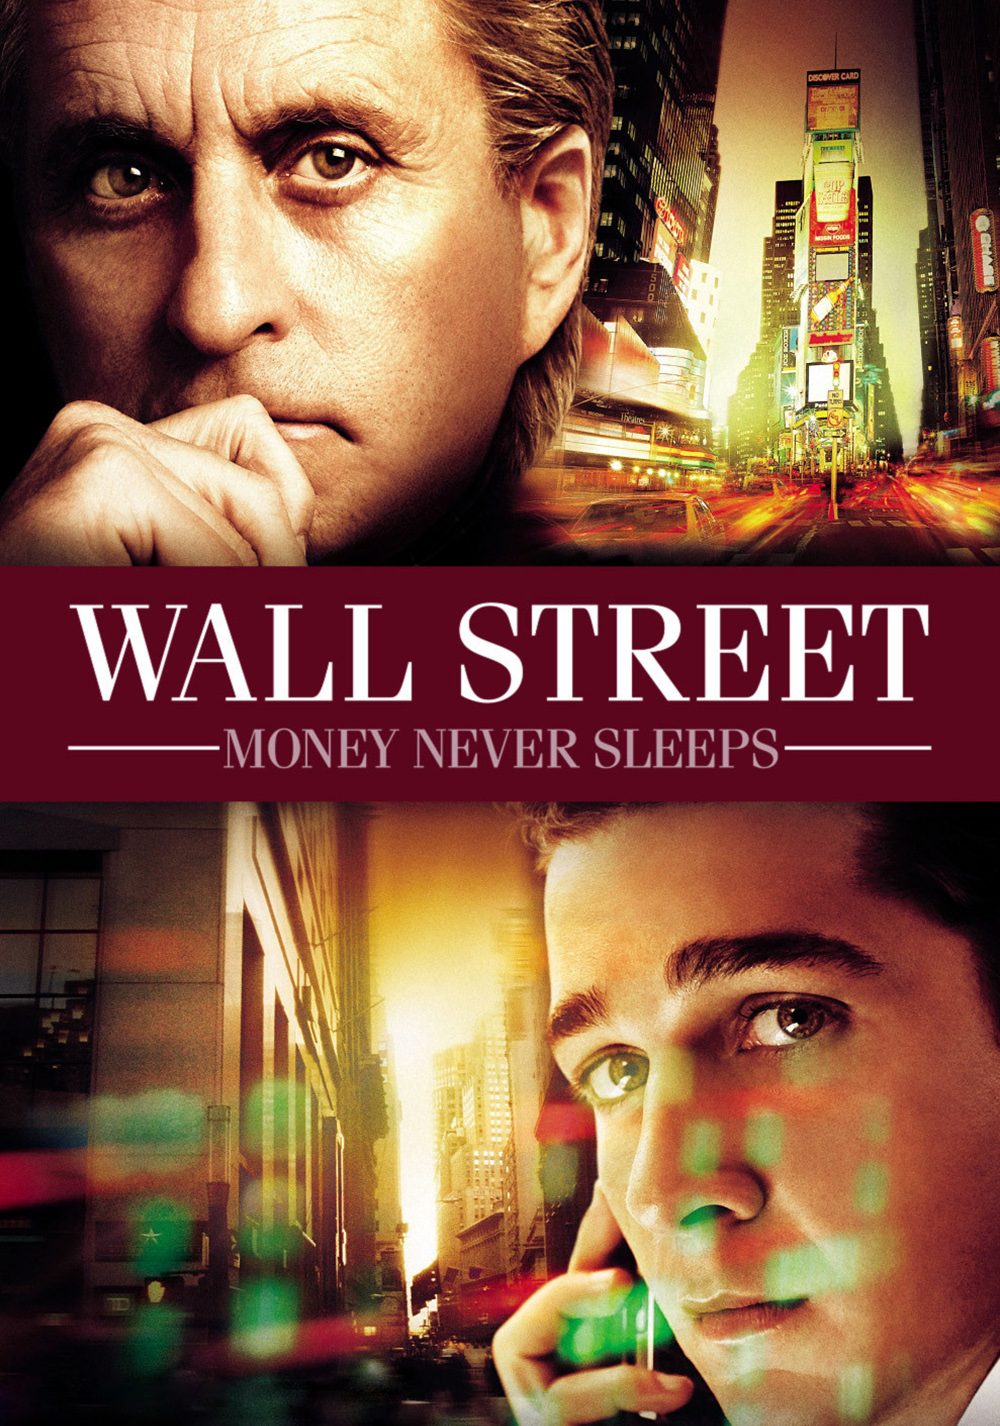 Oliver stones long-awaited sequel to his 1987 hit, wall street